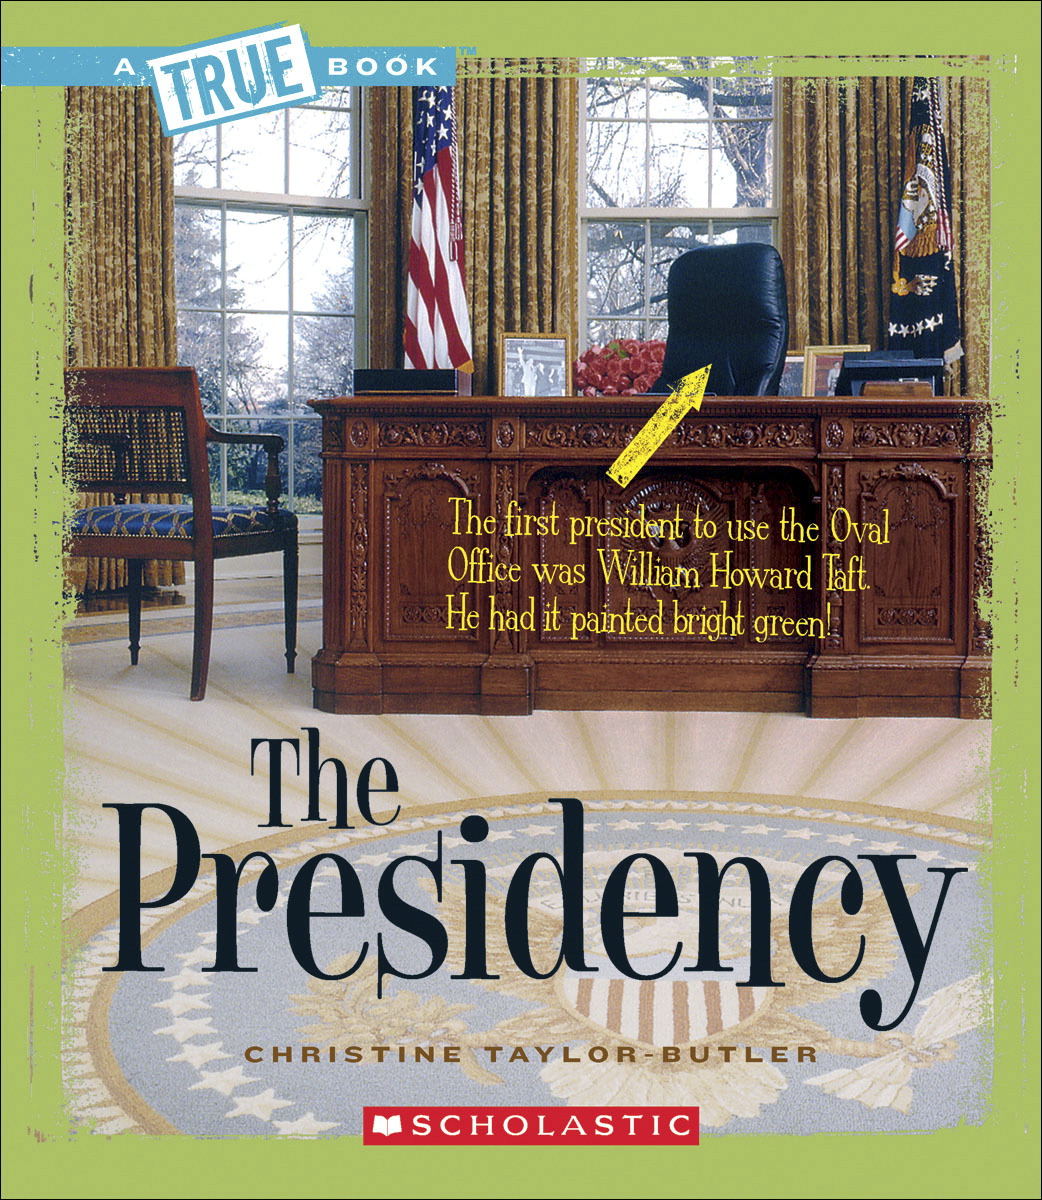 Scholastic A True Book-American History: The Presidency, 48 pages